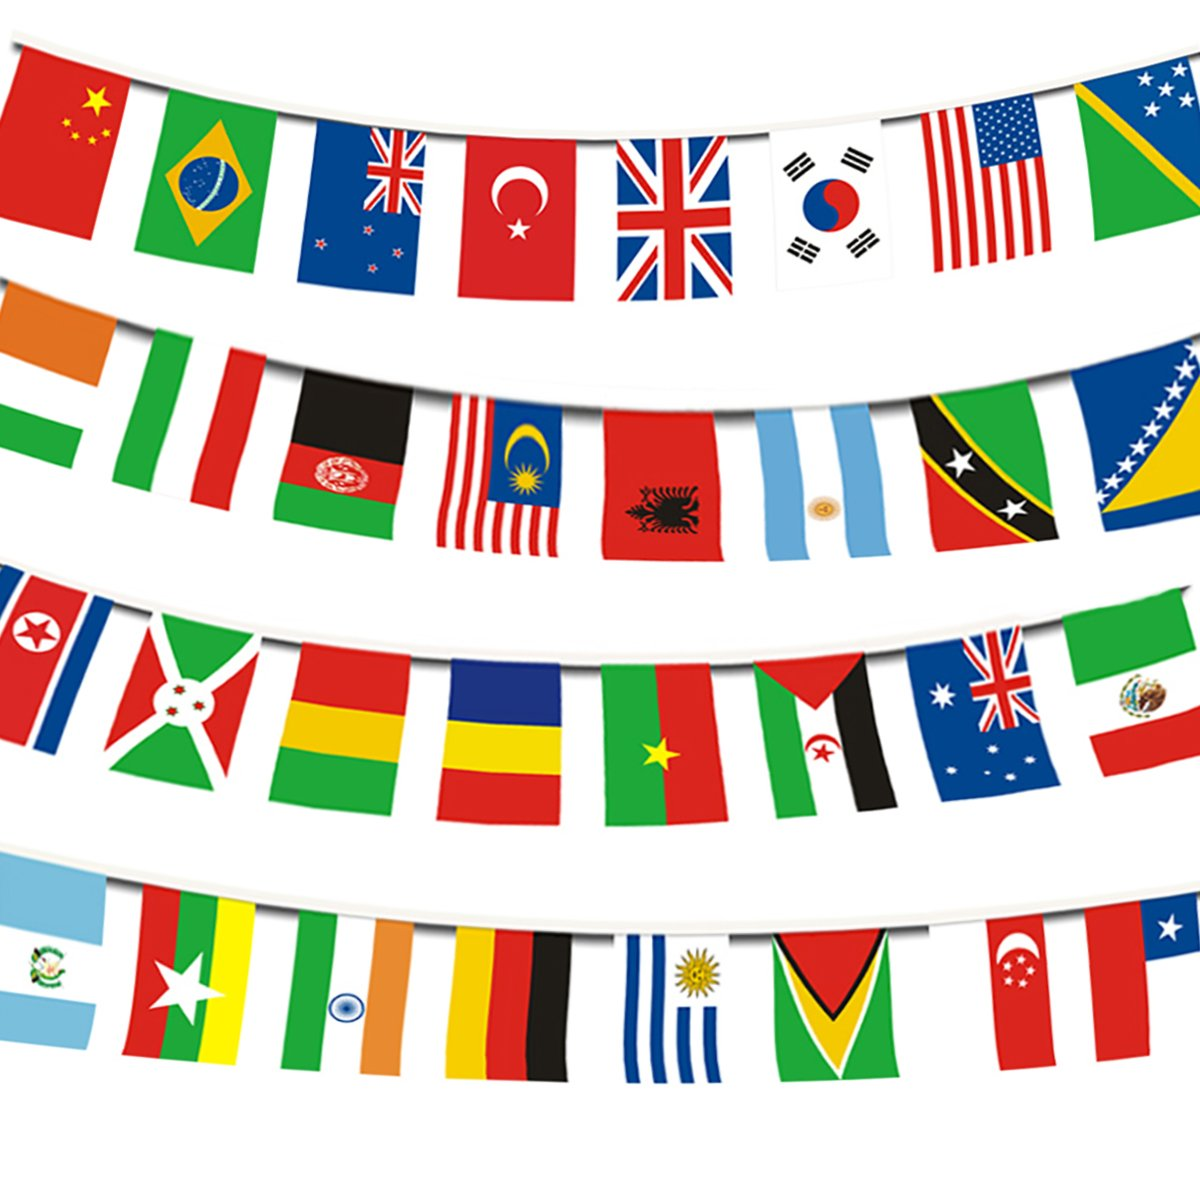 Echolife 200 Countries International String Flag Bunting Banner 164ft World Cup Flag Banners for Bar Sports Party Decorations (200 Countries Flag)